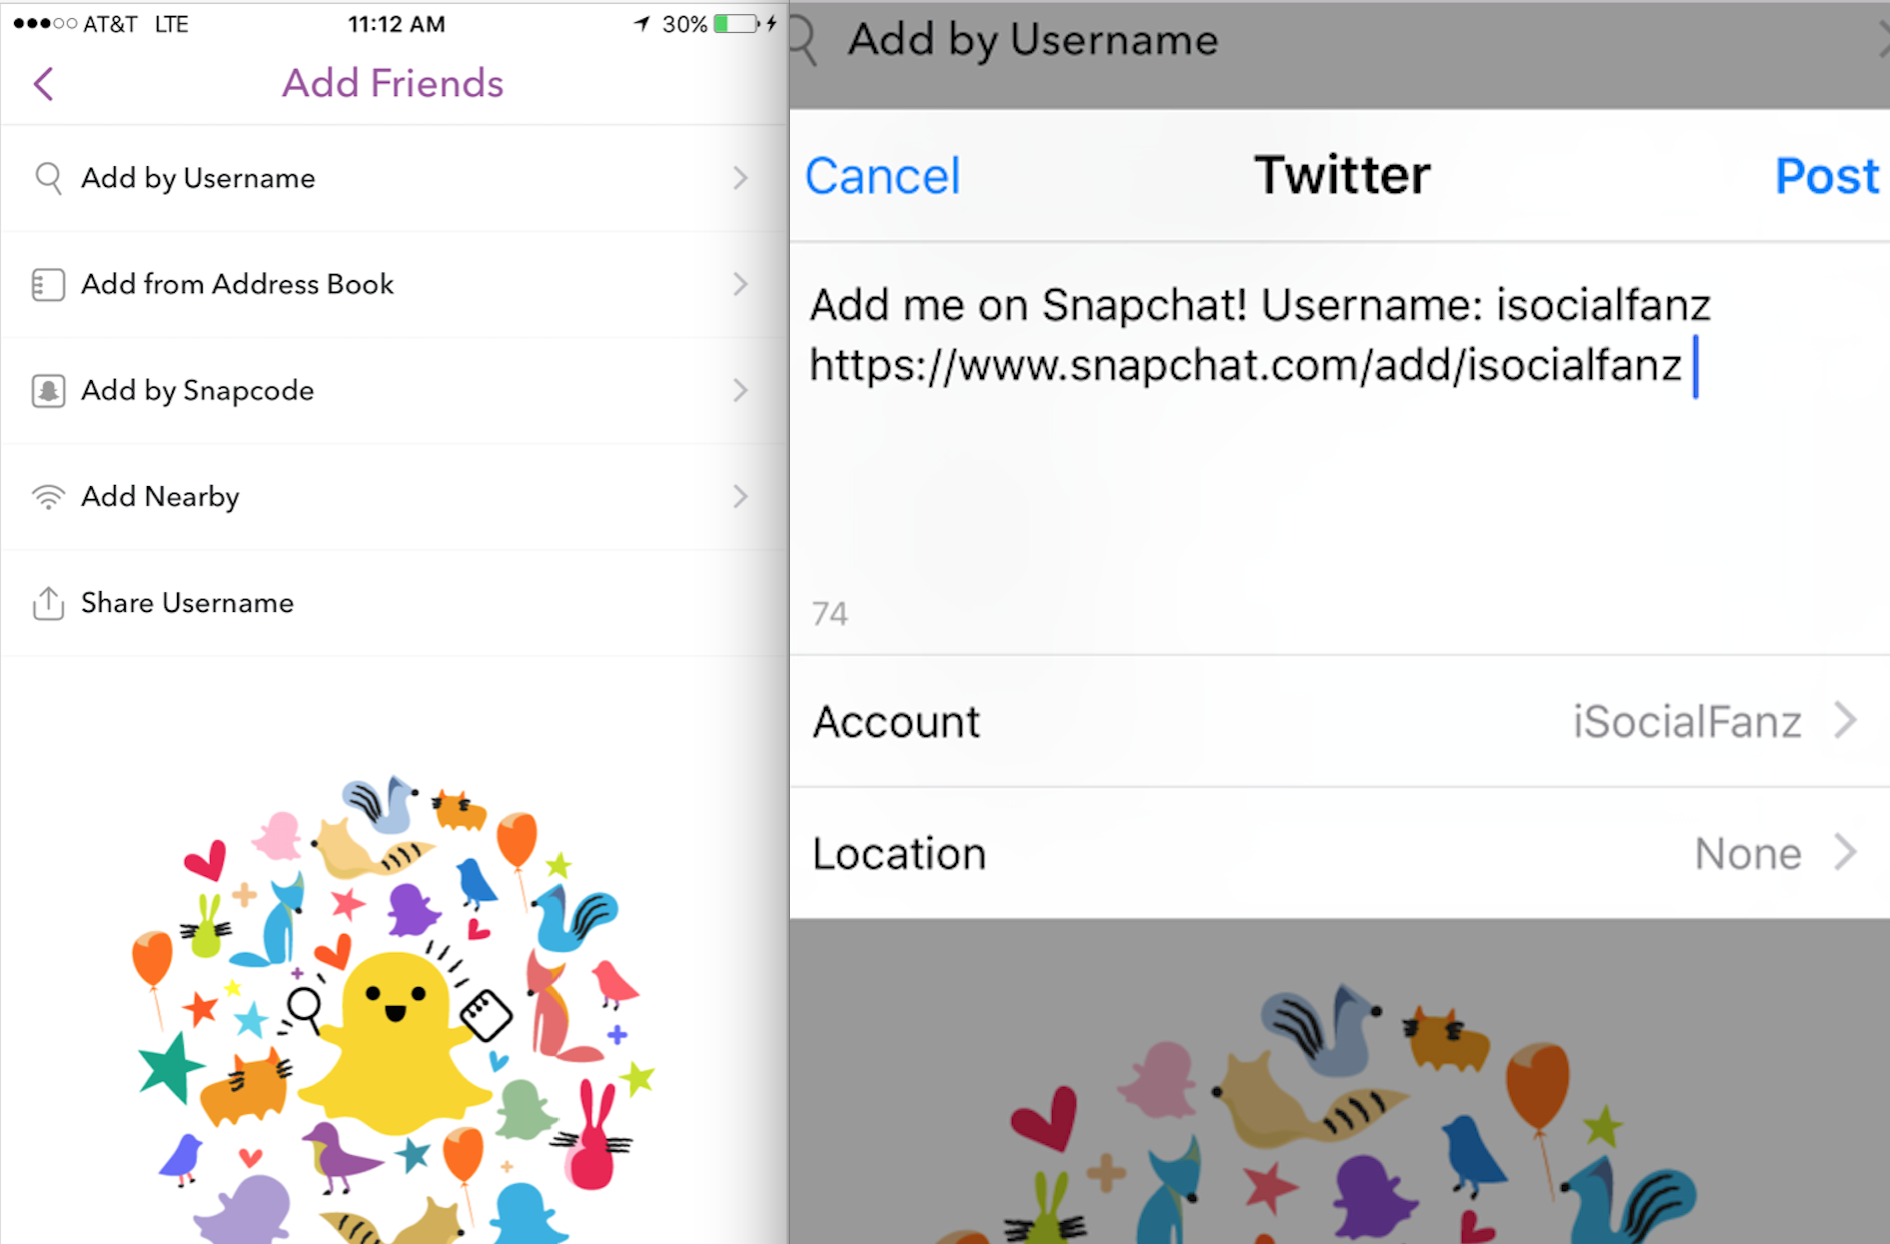 Snapchat URL Change Huge For Promoting Your Snapchat Code On